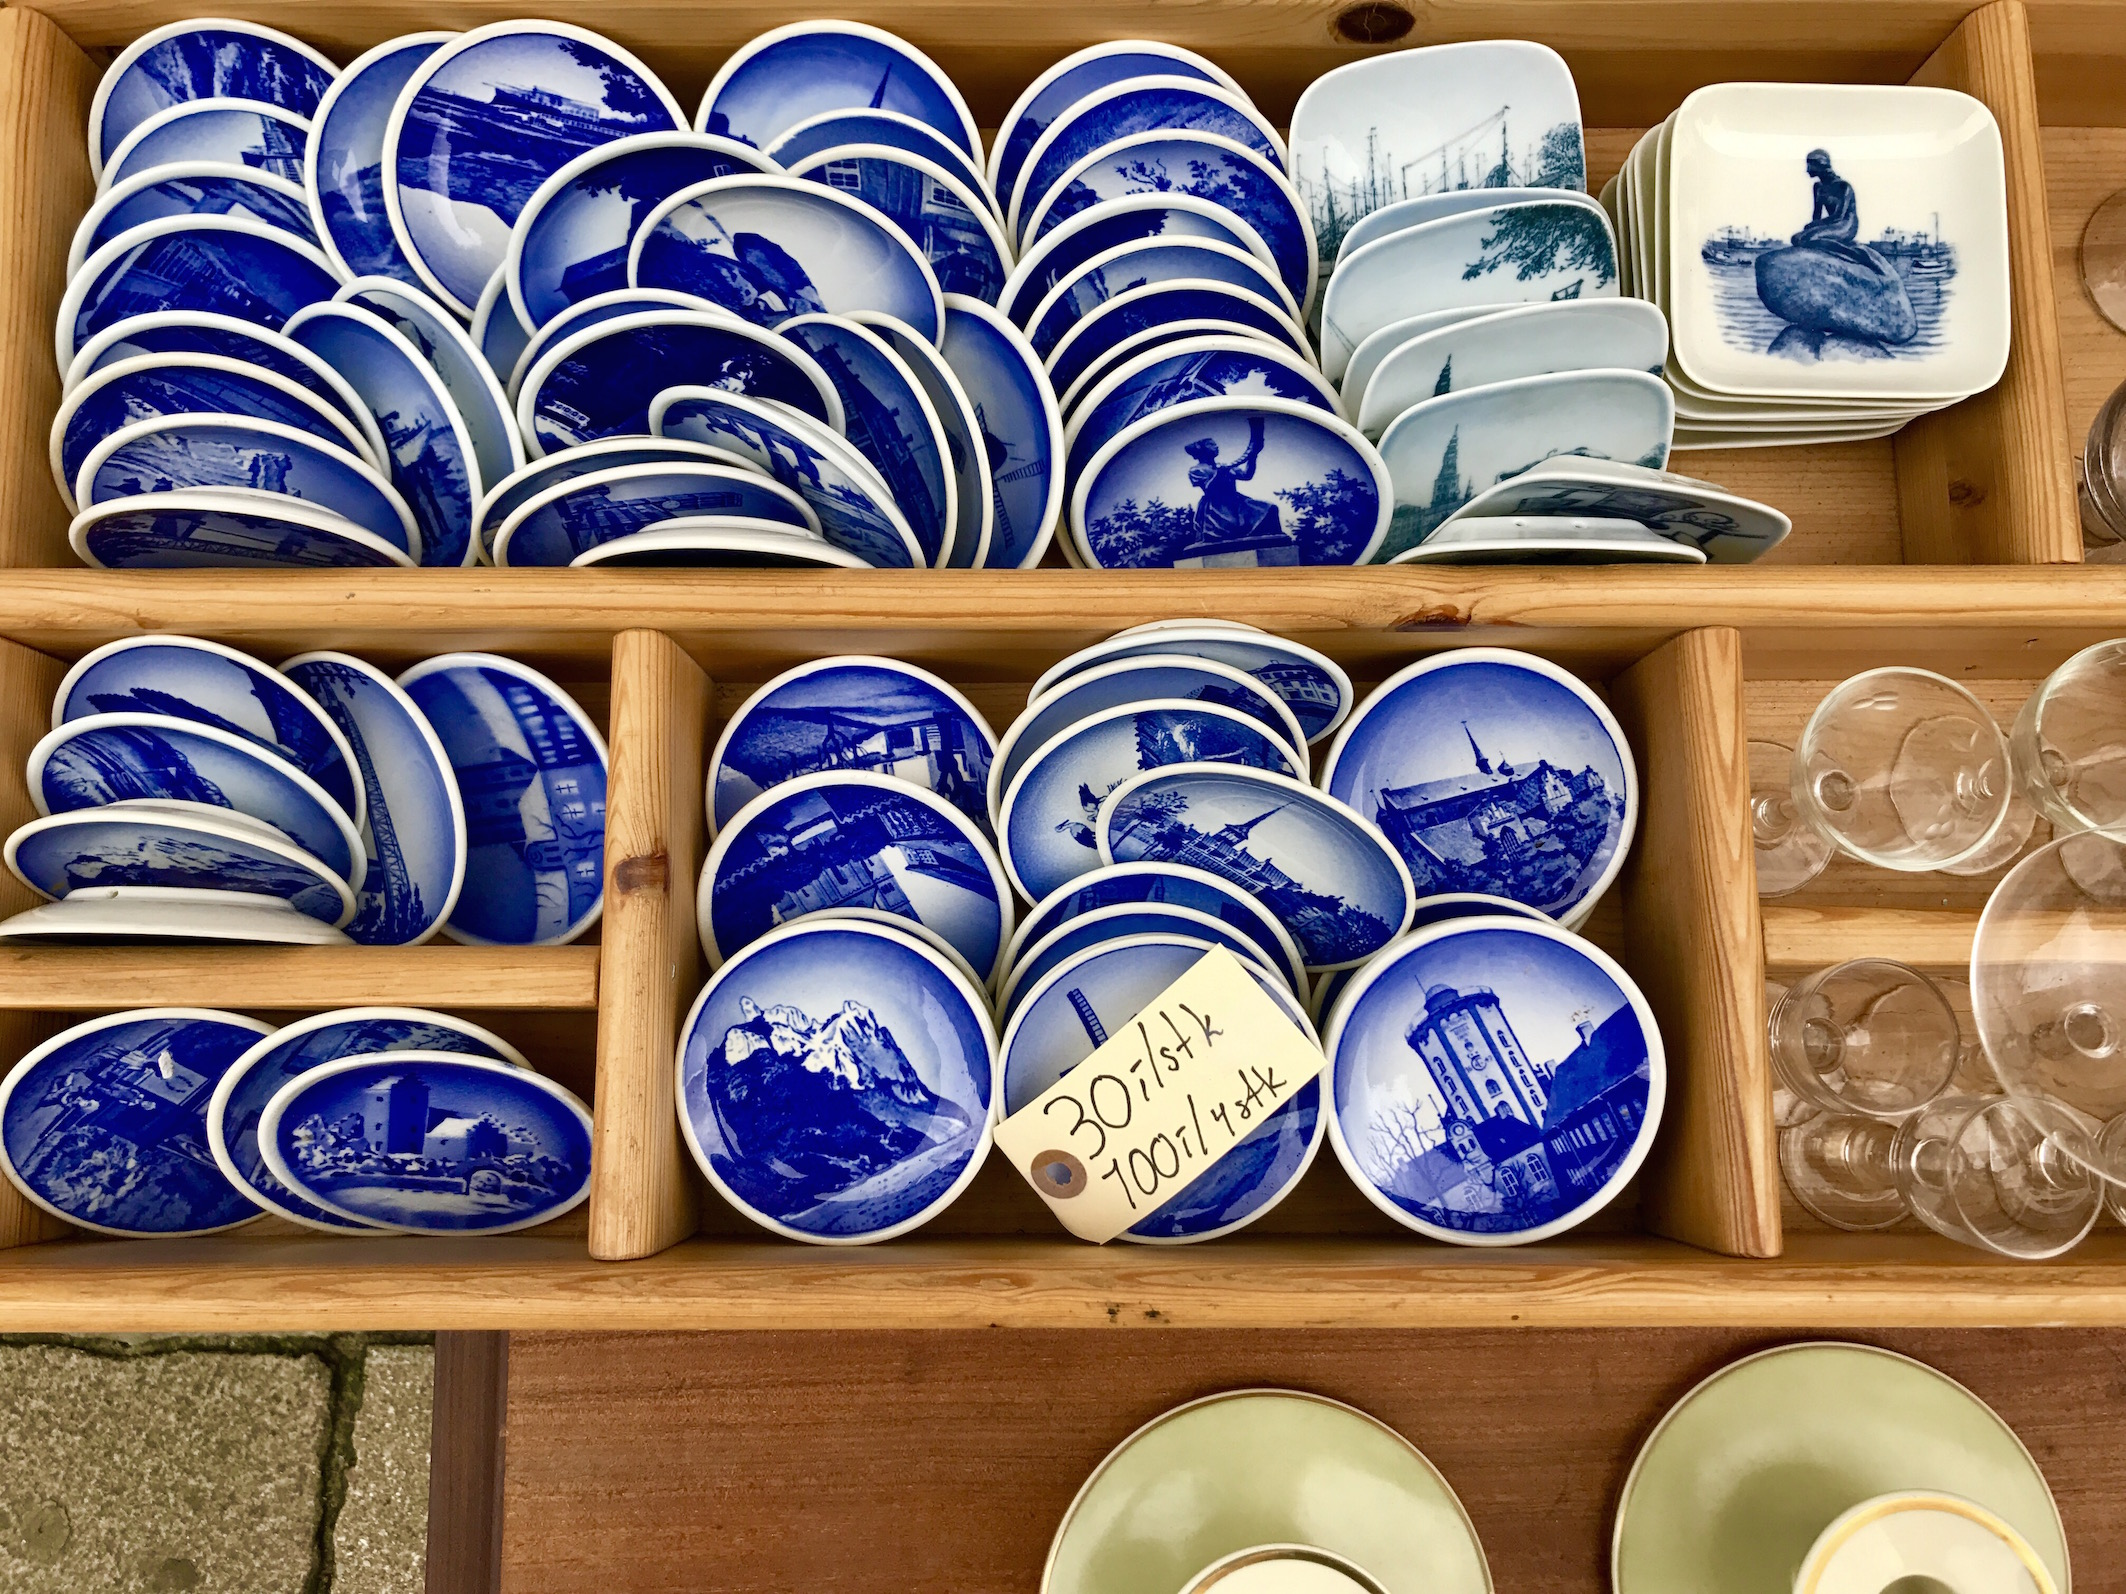 Souvenirs From Copenhagen Vintage Danish Blue Plates Babyccino Kids Daily Tips Children S Products Craft Ideas Recipes More